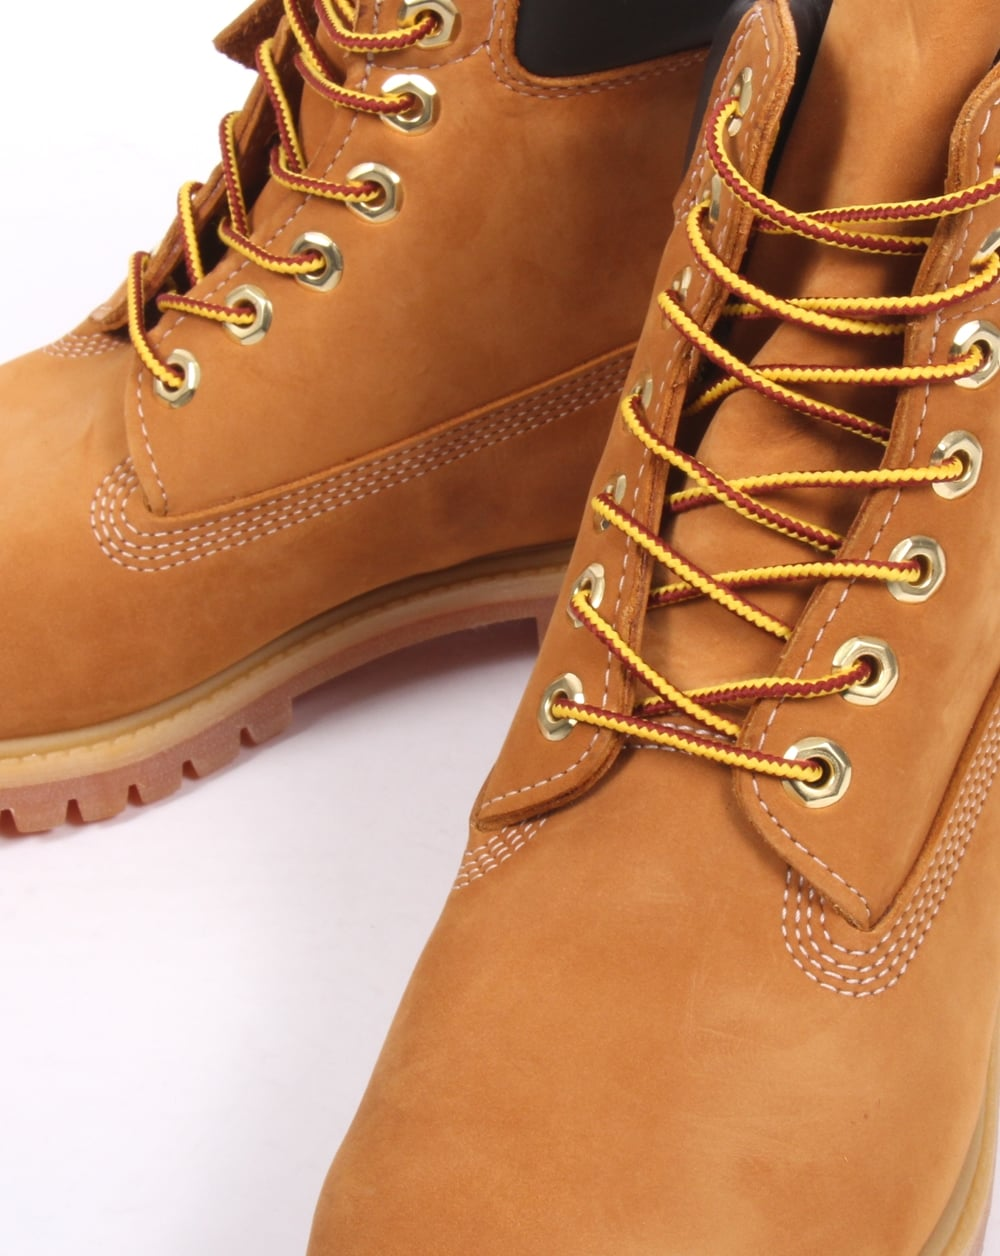 Timberland Icon 6 Inch Premium Boots Wheat Nubuck,,mens,leather,nubuck 4f57e5b5bc88